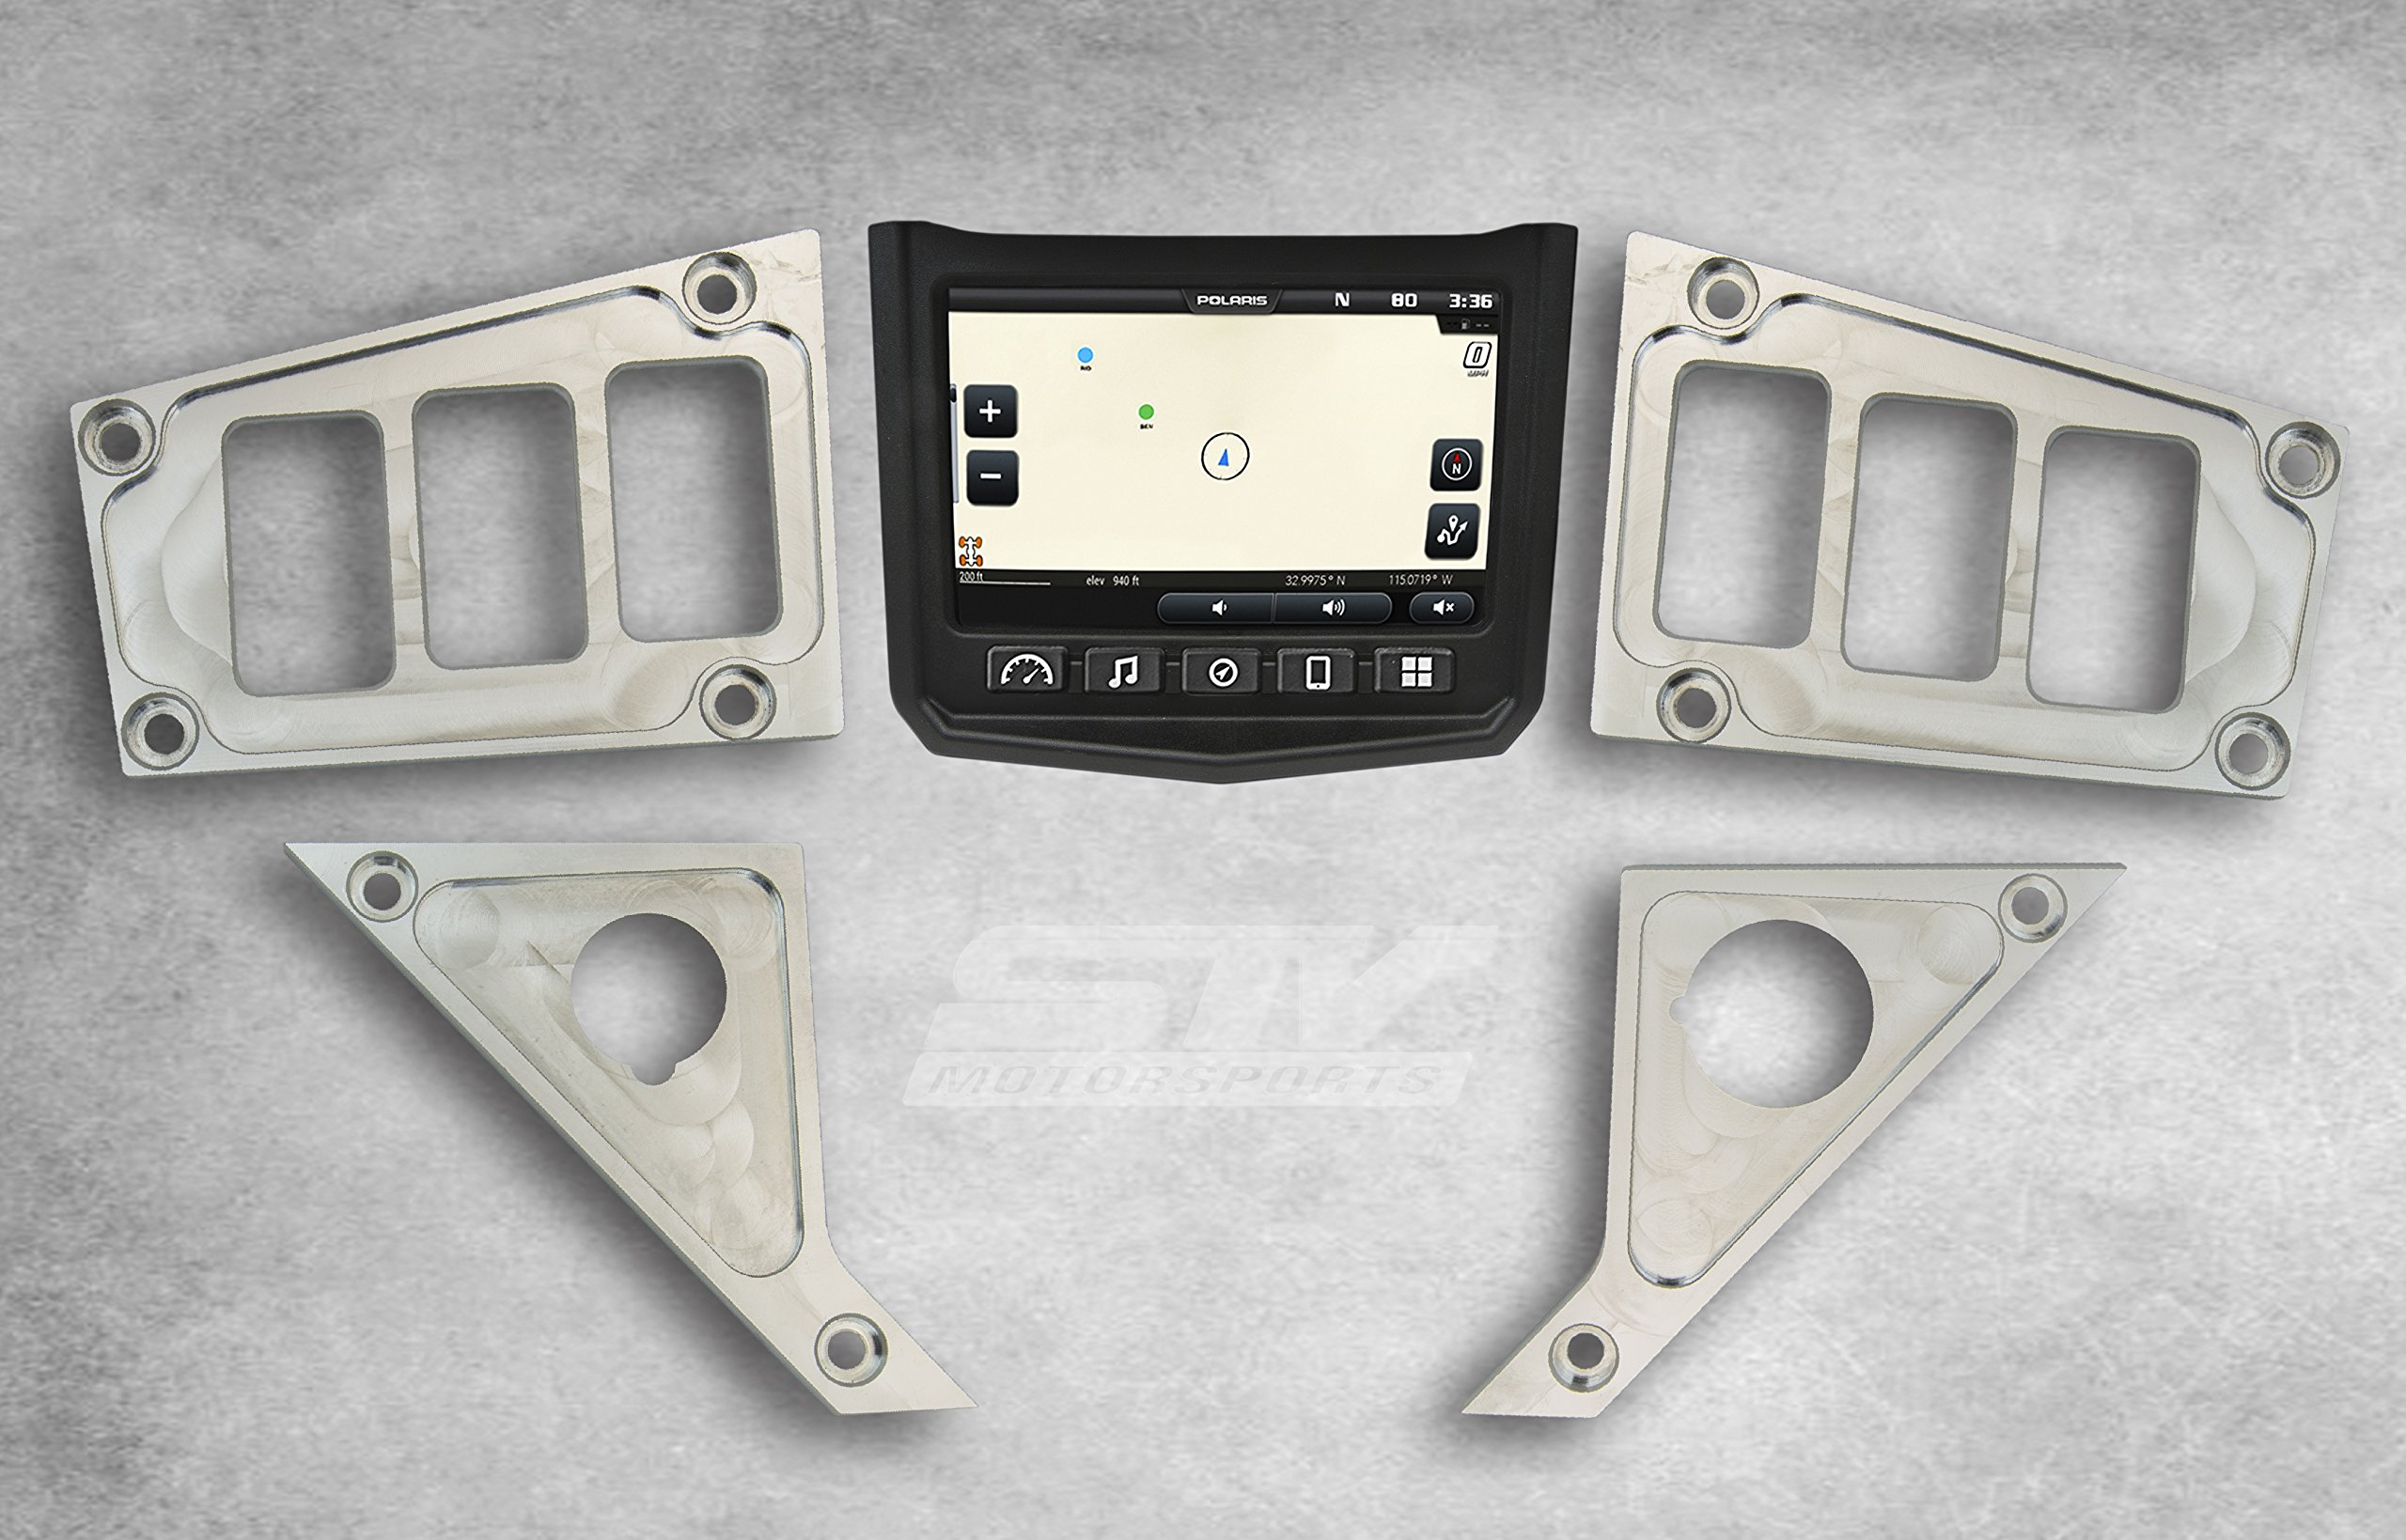 STV Motorsports Custom Aluminum Dash Panel for 2017 POLARIS RZR XP 1000 RIDE COMMAND EDITION with 6 switch openings – MADE 100% in USA